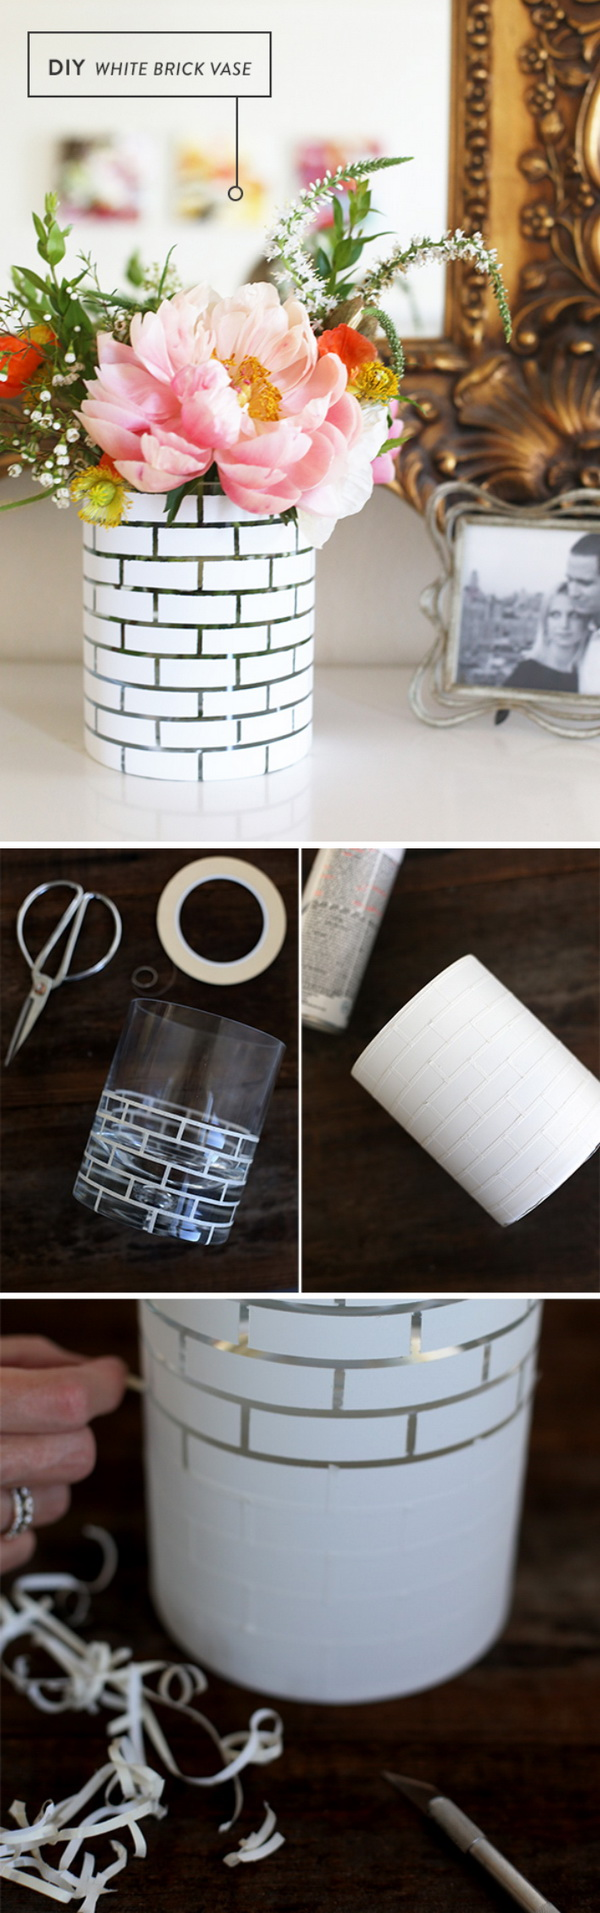 DIY White Brick Vase: A Creative And Easy Way To Add Some New Life Into